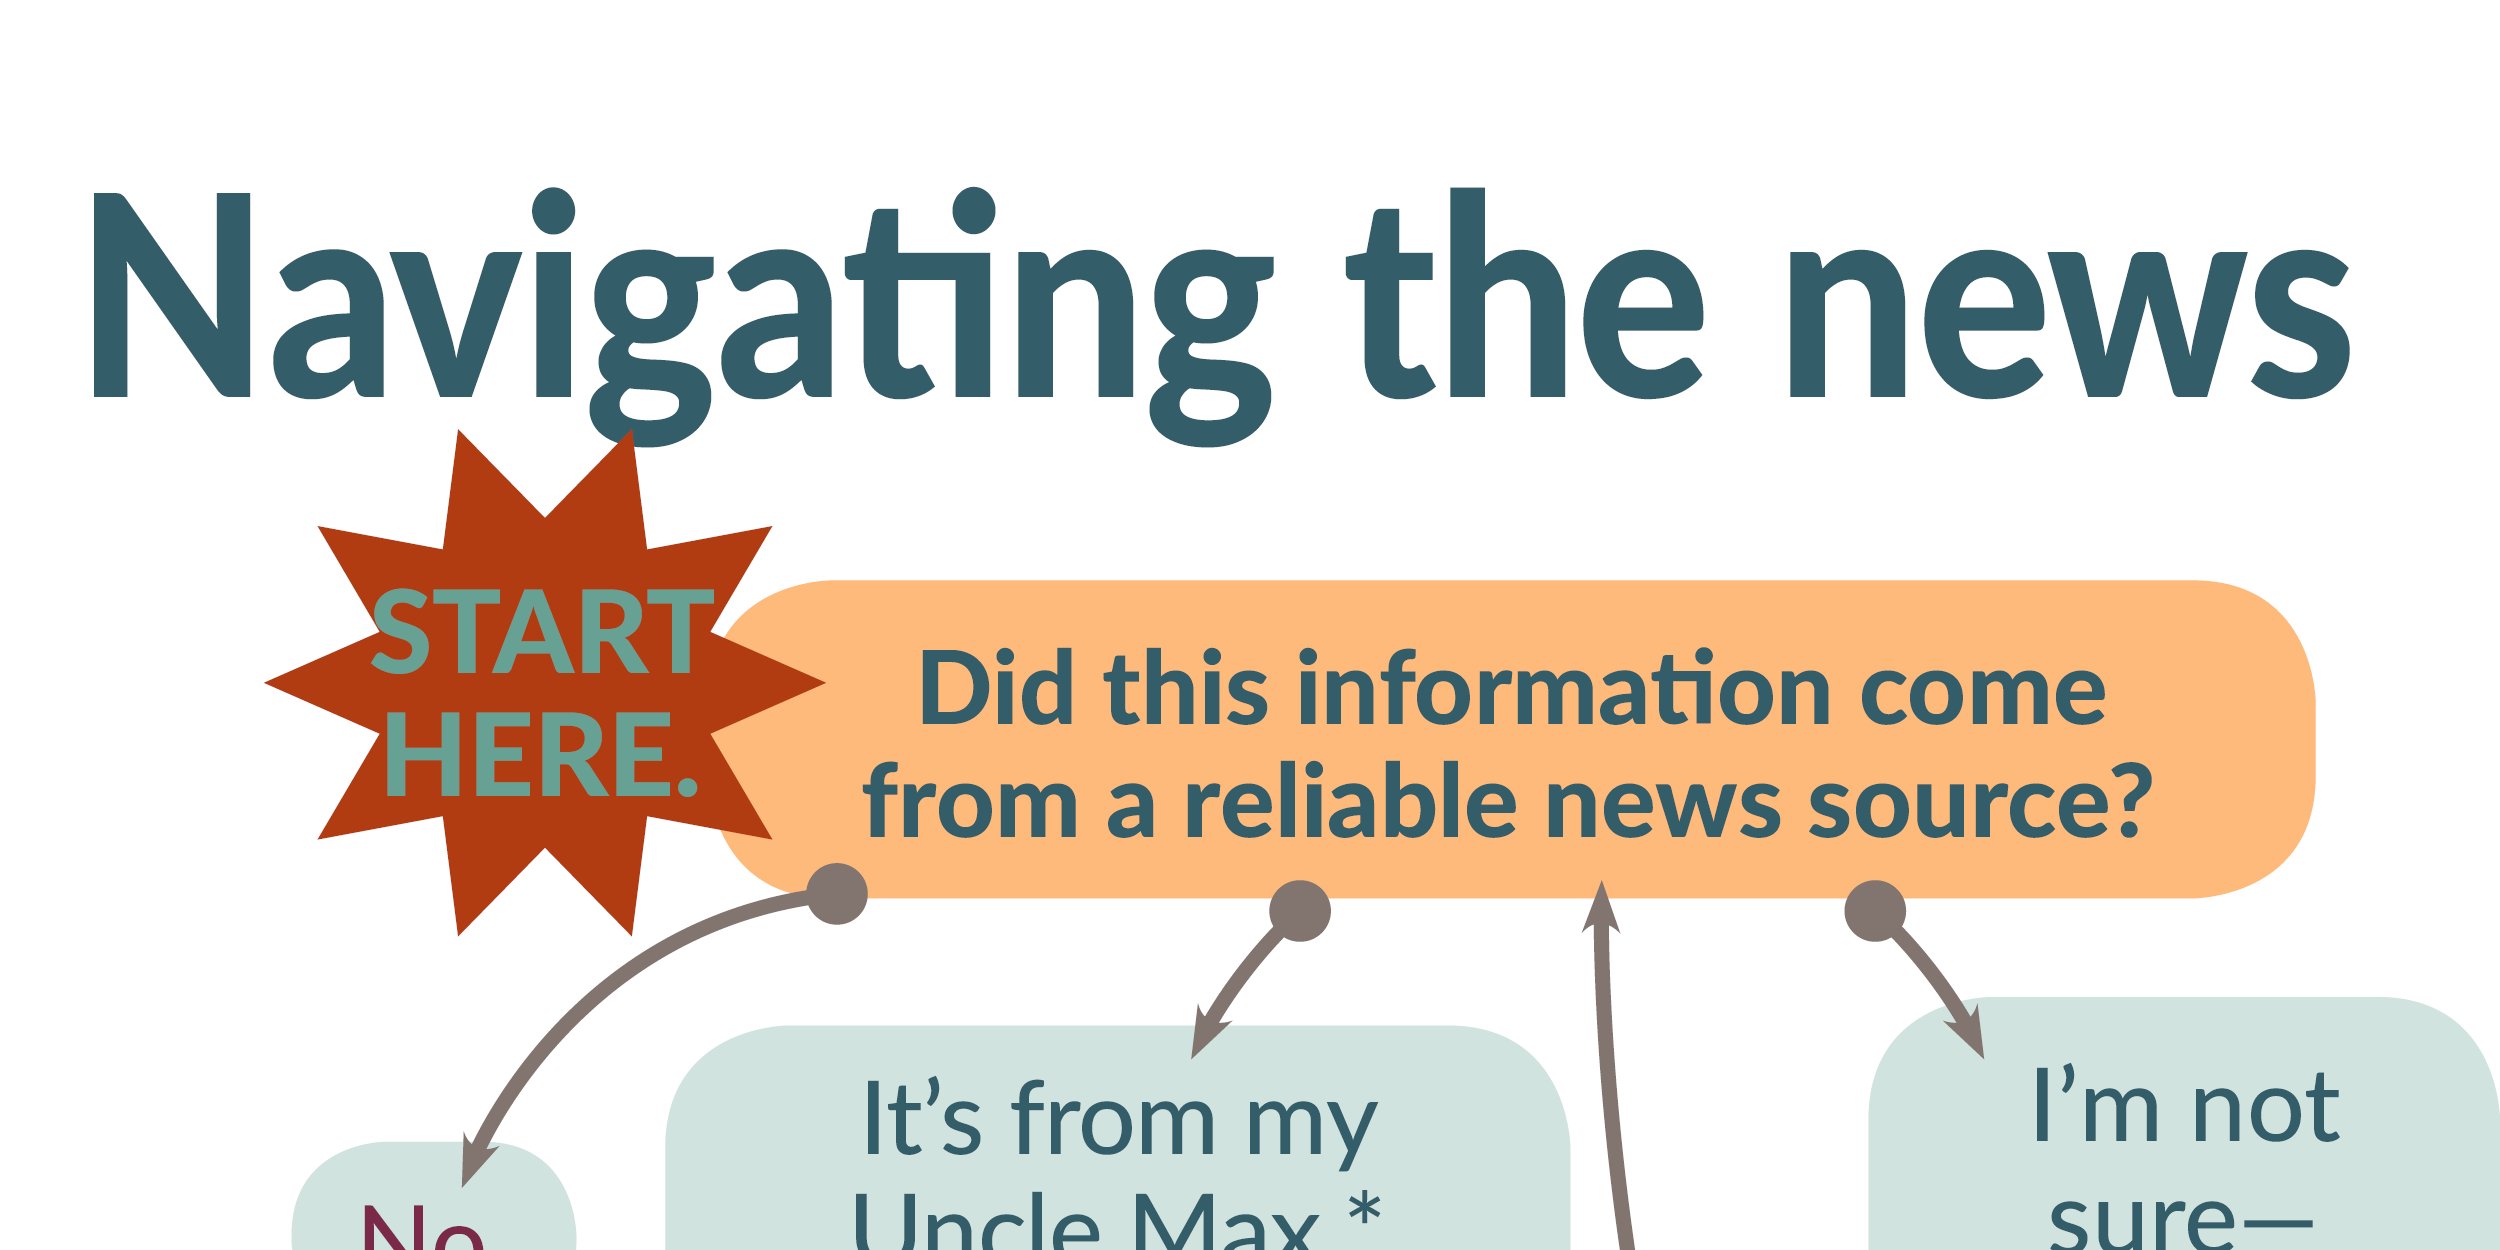 INFOGRAPHIC: Navigating the news